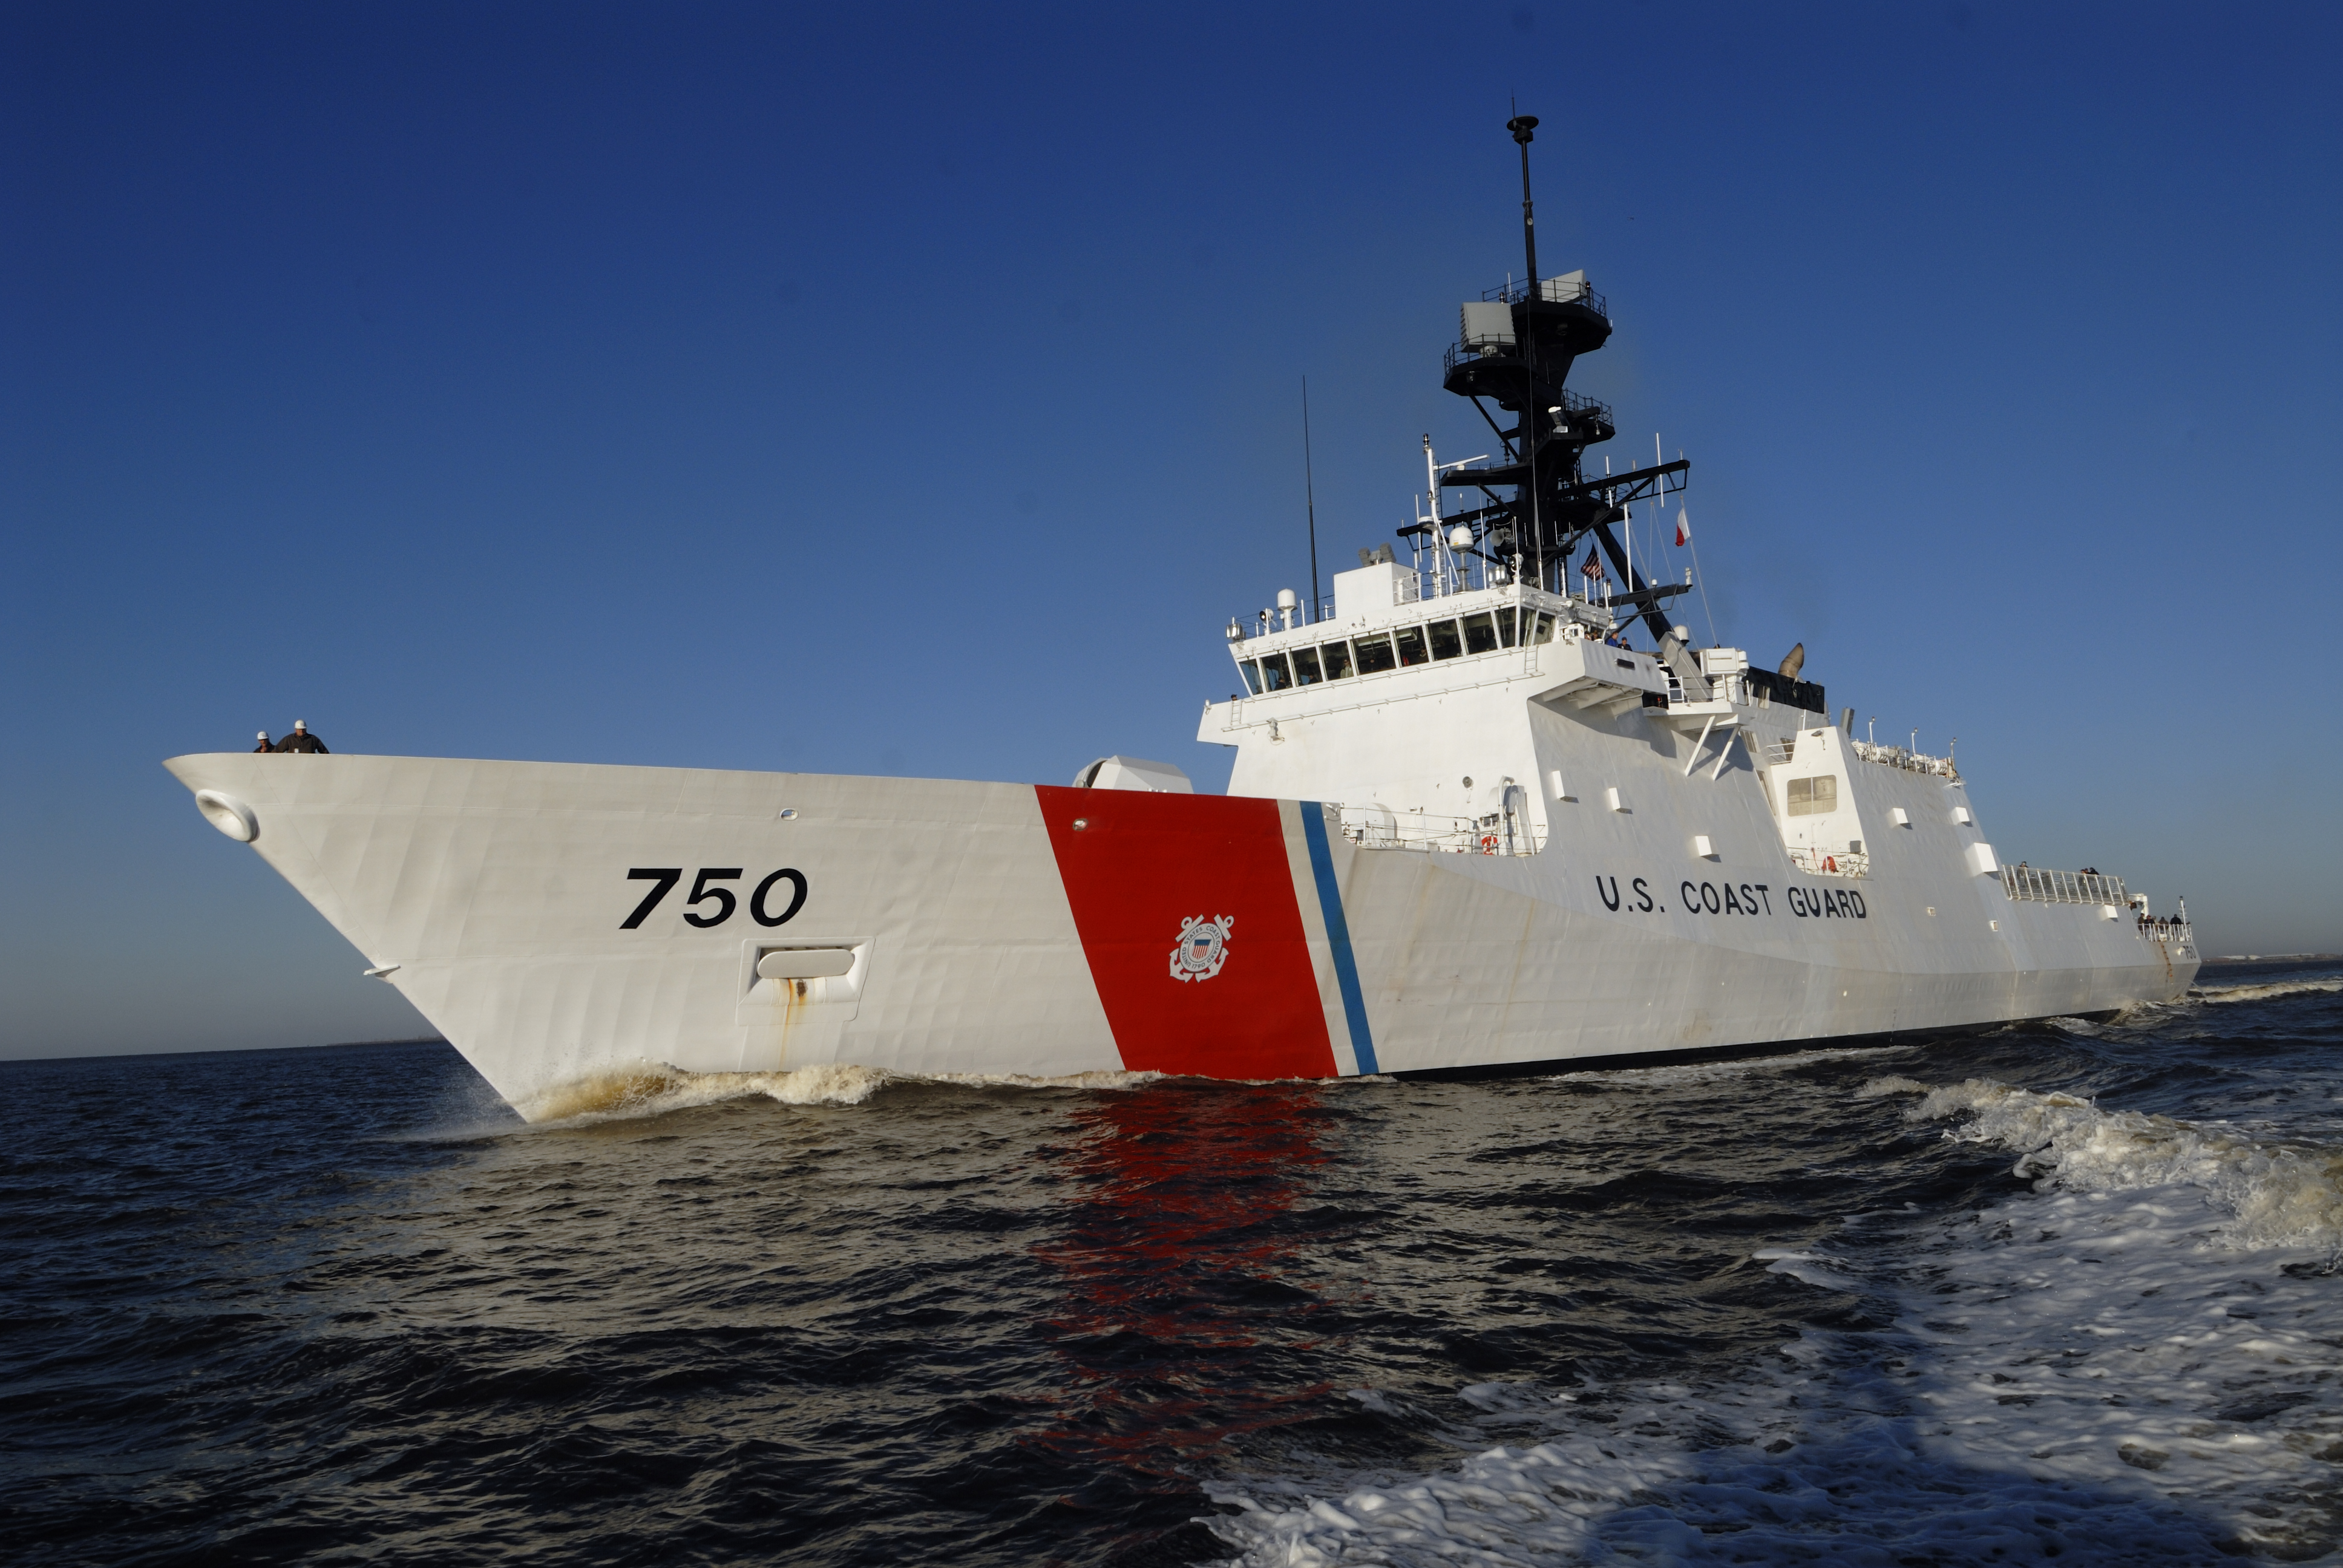 study guide coast guard Flashcards | Quizlet